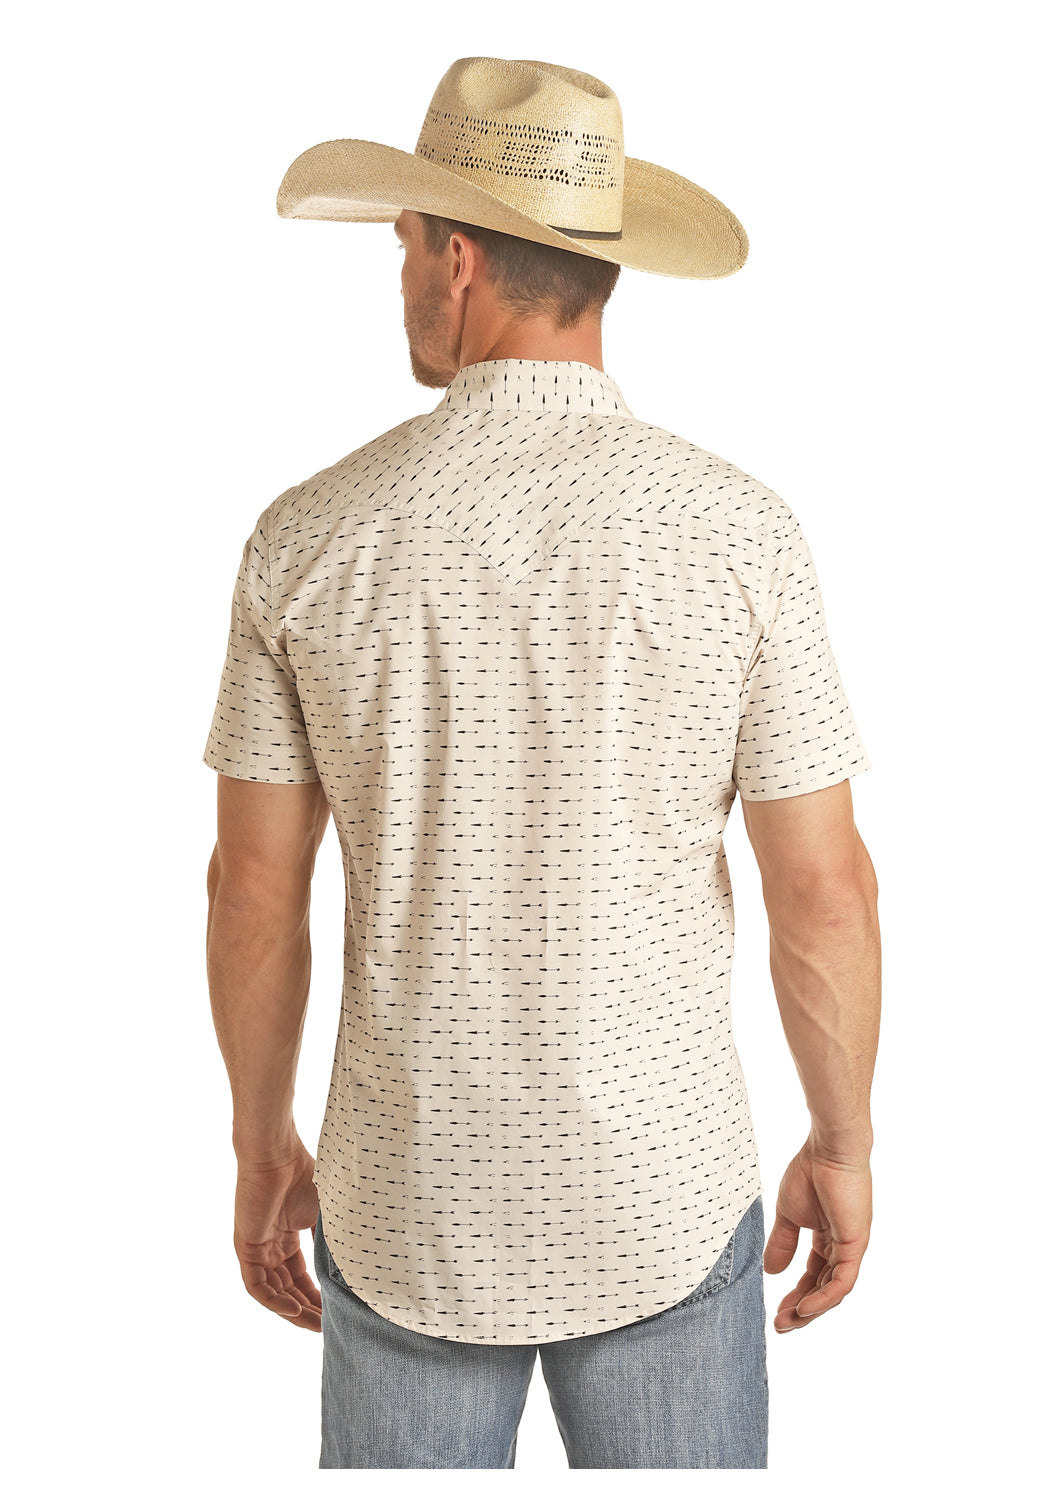 Panhandle Arrow Men's Pearl Snap